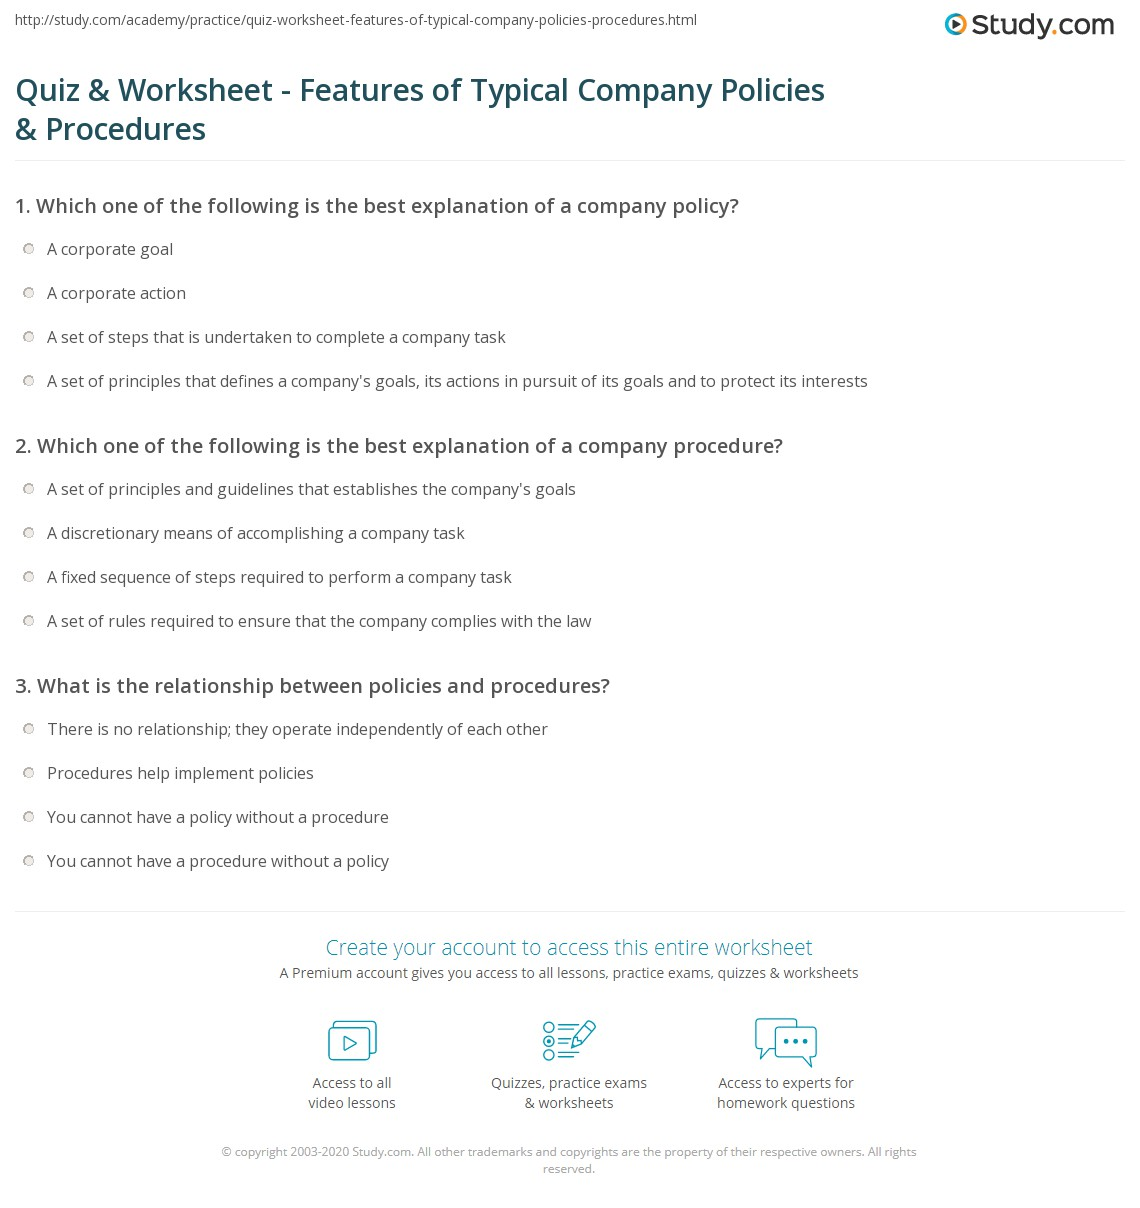 Policy And Procedures Template | Quiz Worksheet Features Of Typical Company Policies Procedures